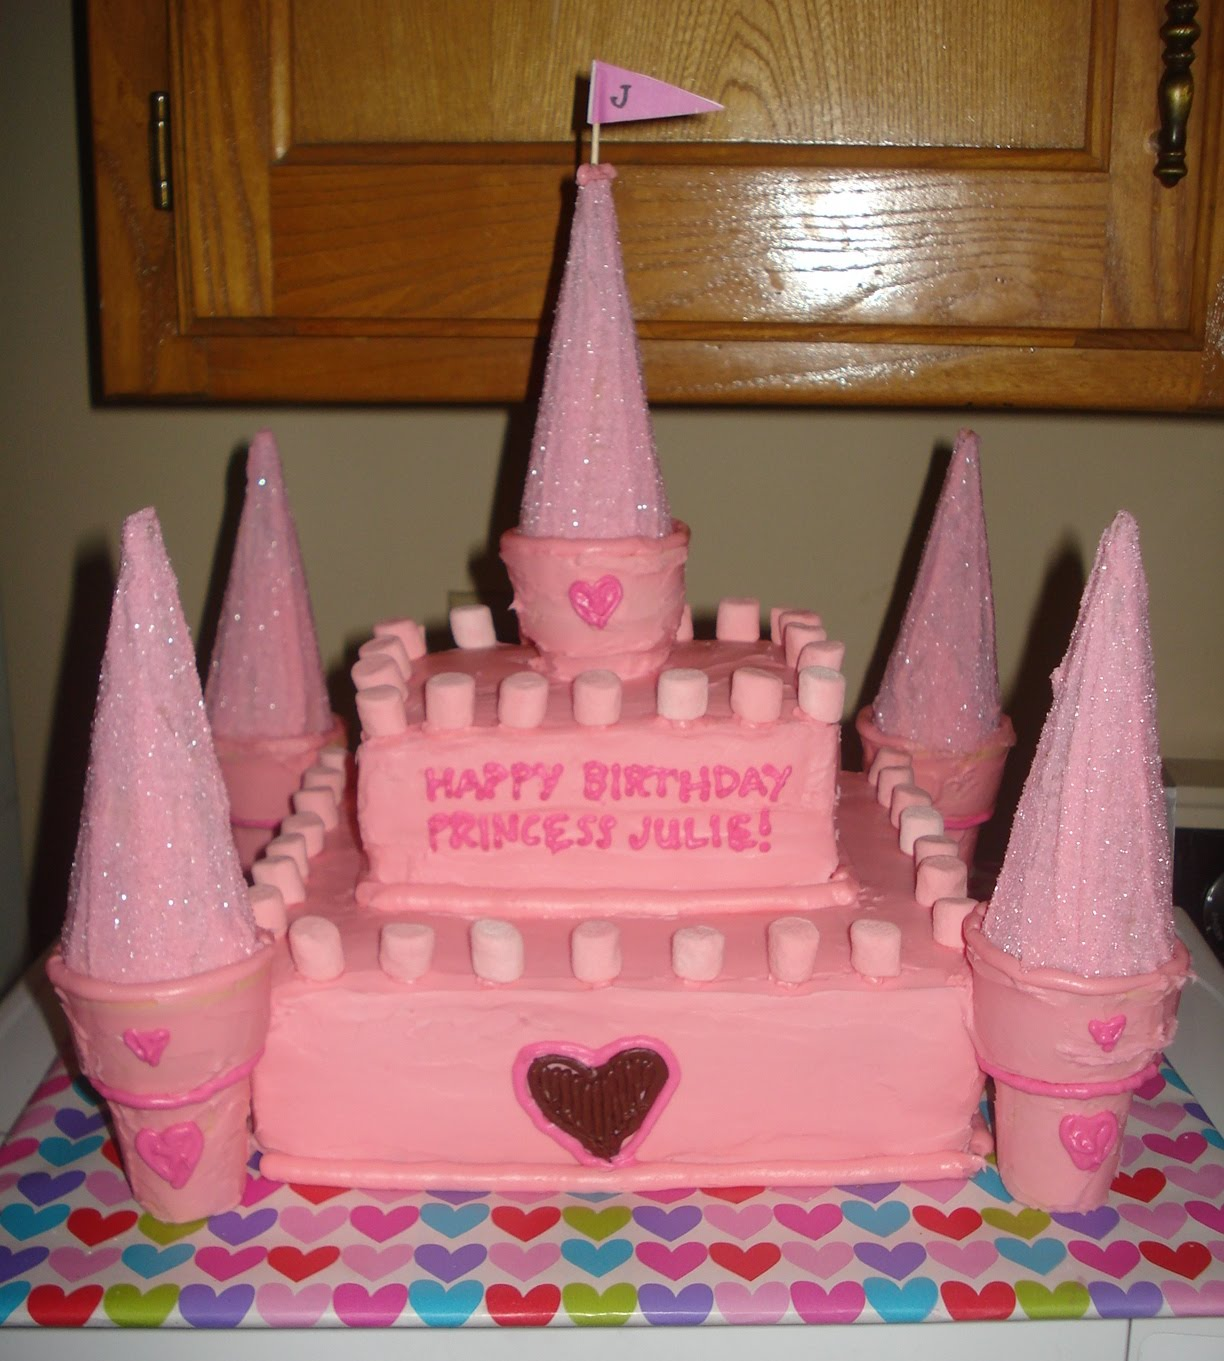 Easy Cake Designs To Make At Home : loving owen {and kate}: princess castle cake